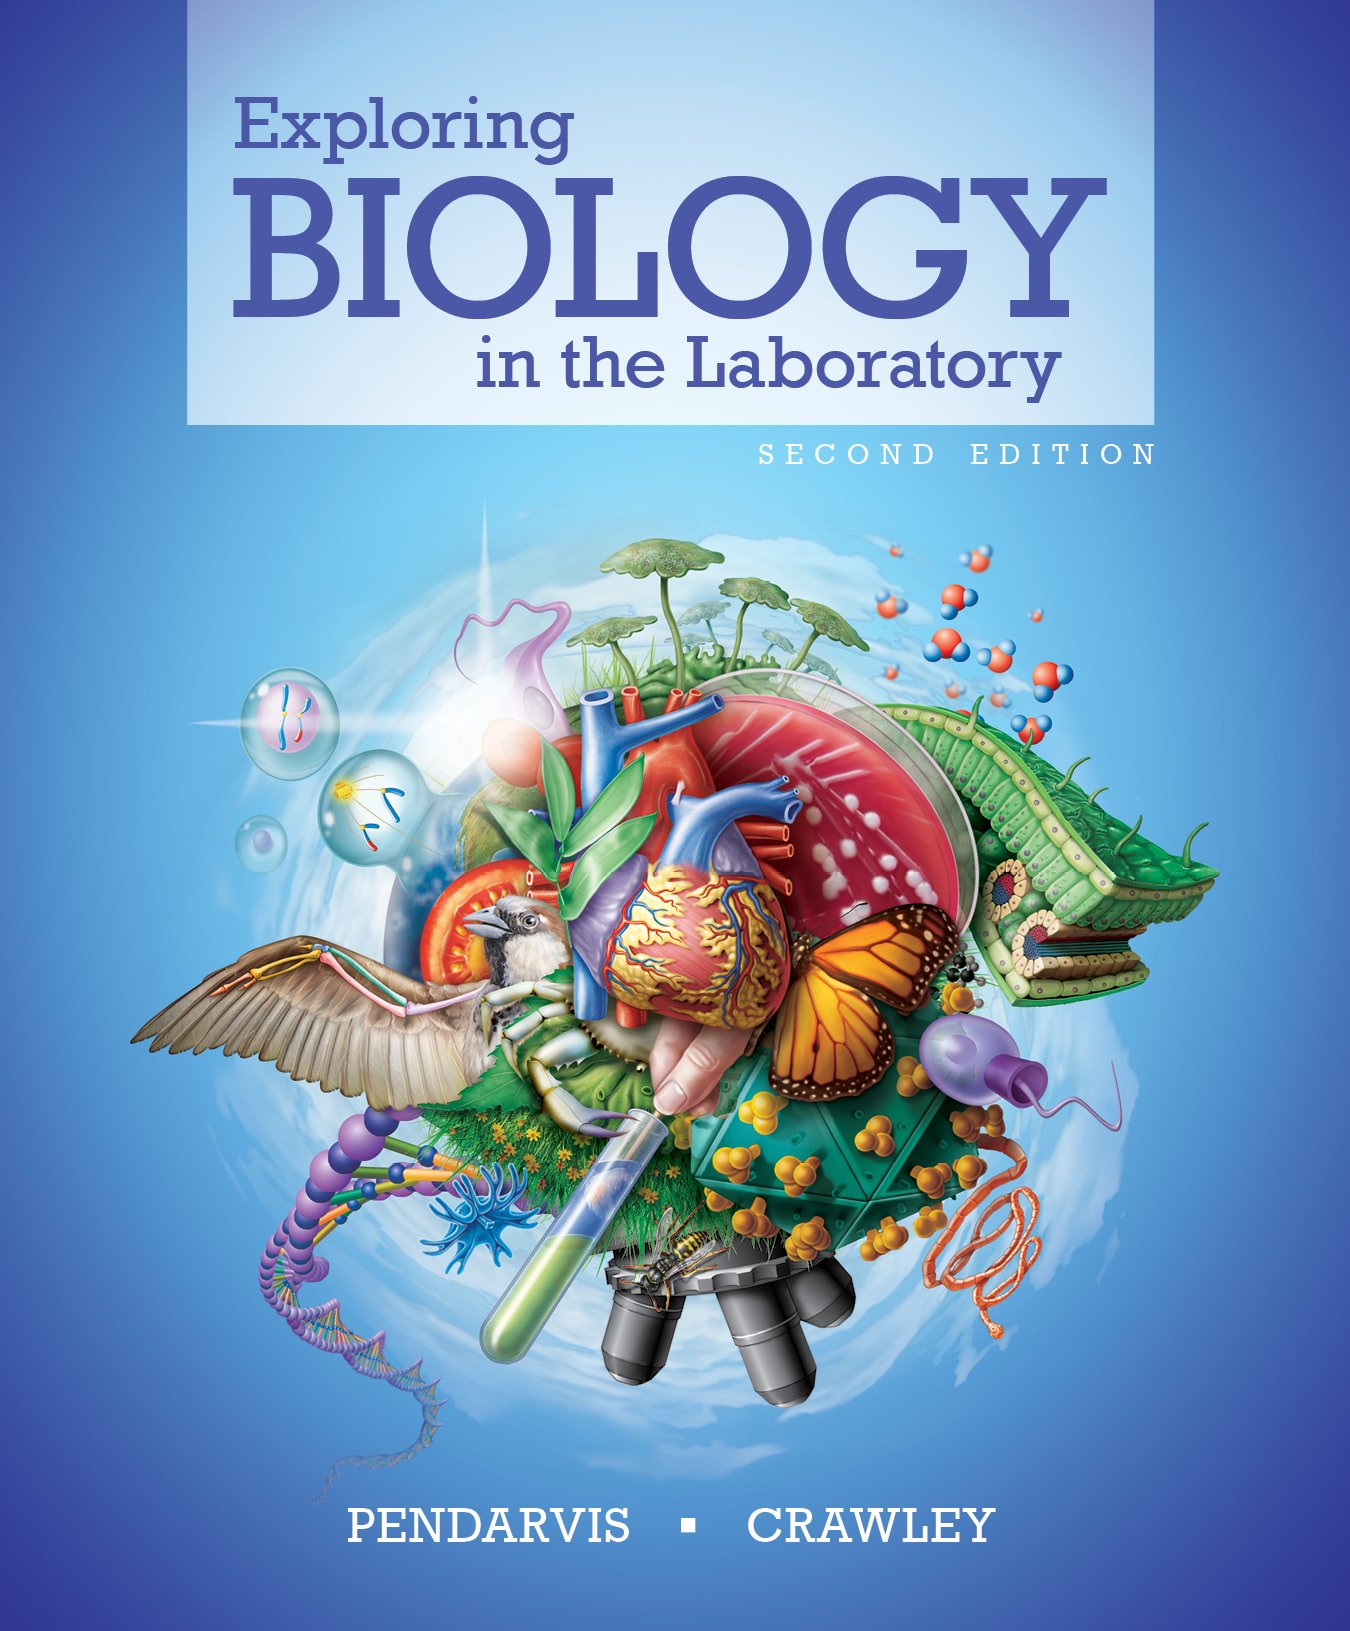 Exploring Biology in the Laboratory second edition